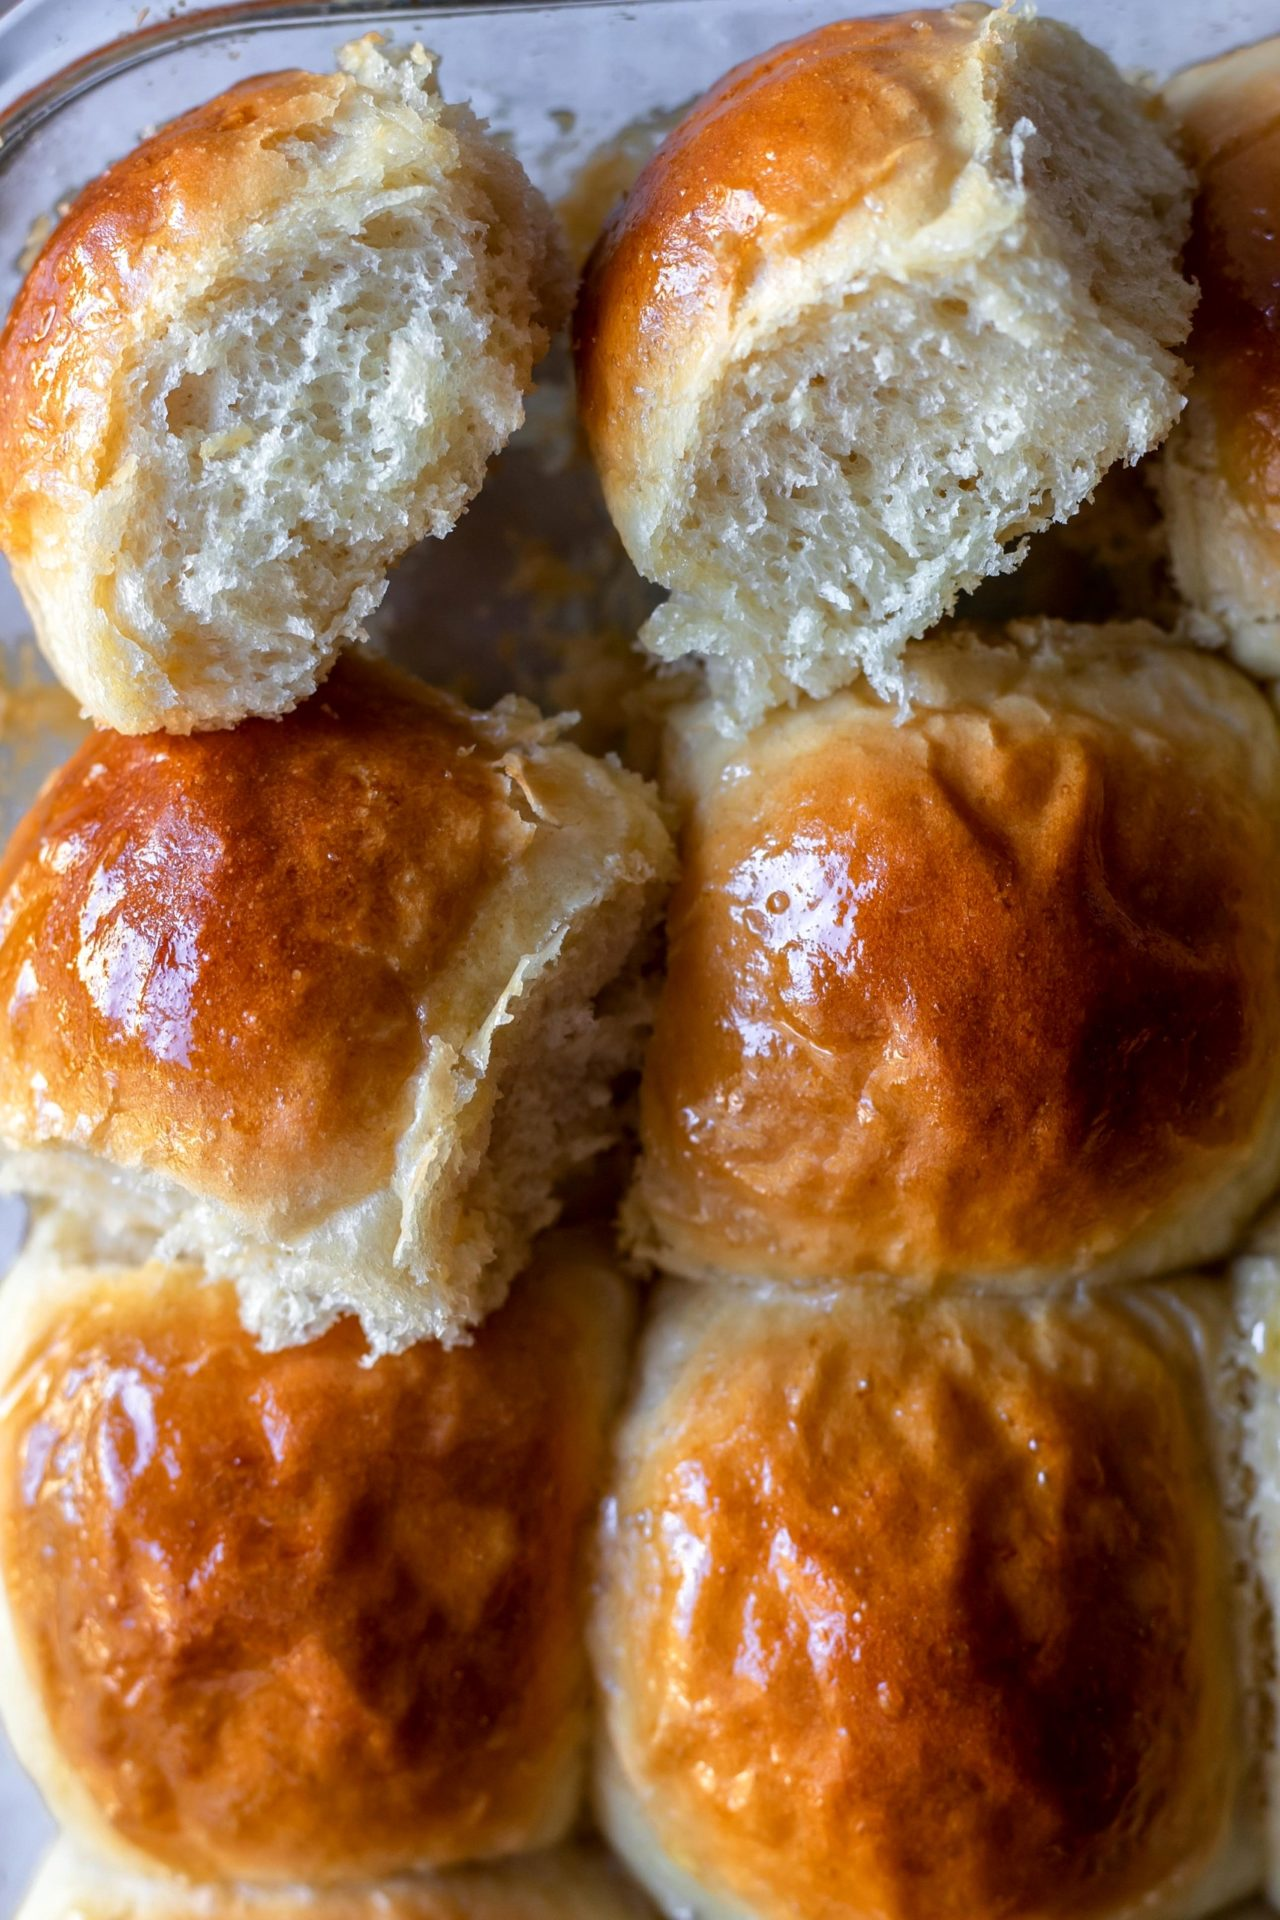 These Gluten-Free Dinner Rolls are tender, buttery, fluffy, flaky on the top and extra soft in the center!